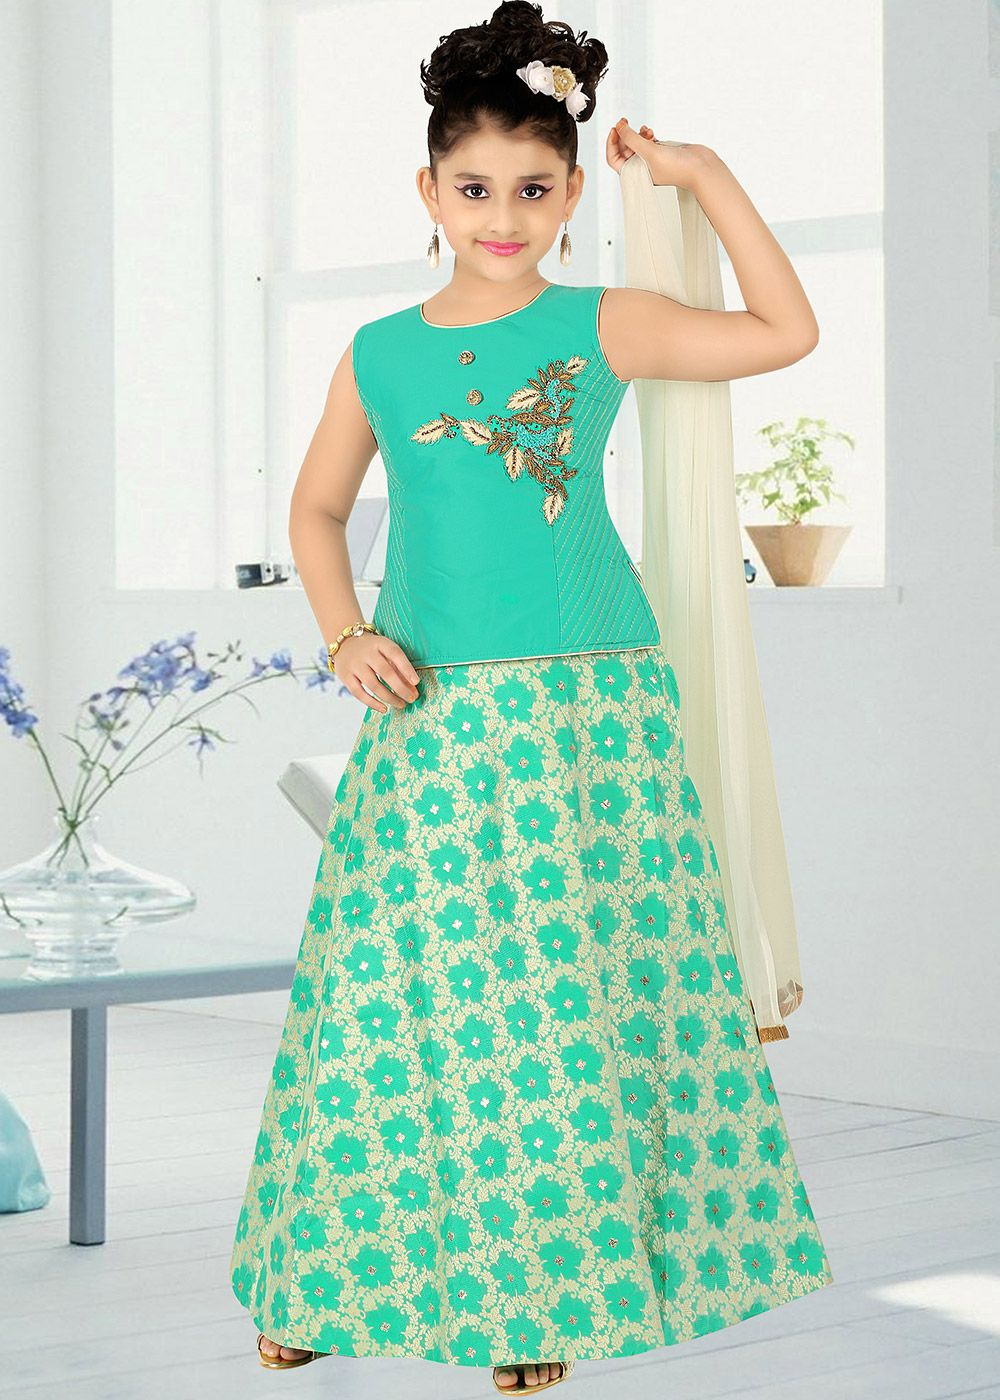 b7771f6d7a84a Children Dress · Panash Most Loved Styles - Buy Sea Green Embroidered  Lehenga Choli online, Work: Beads